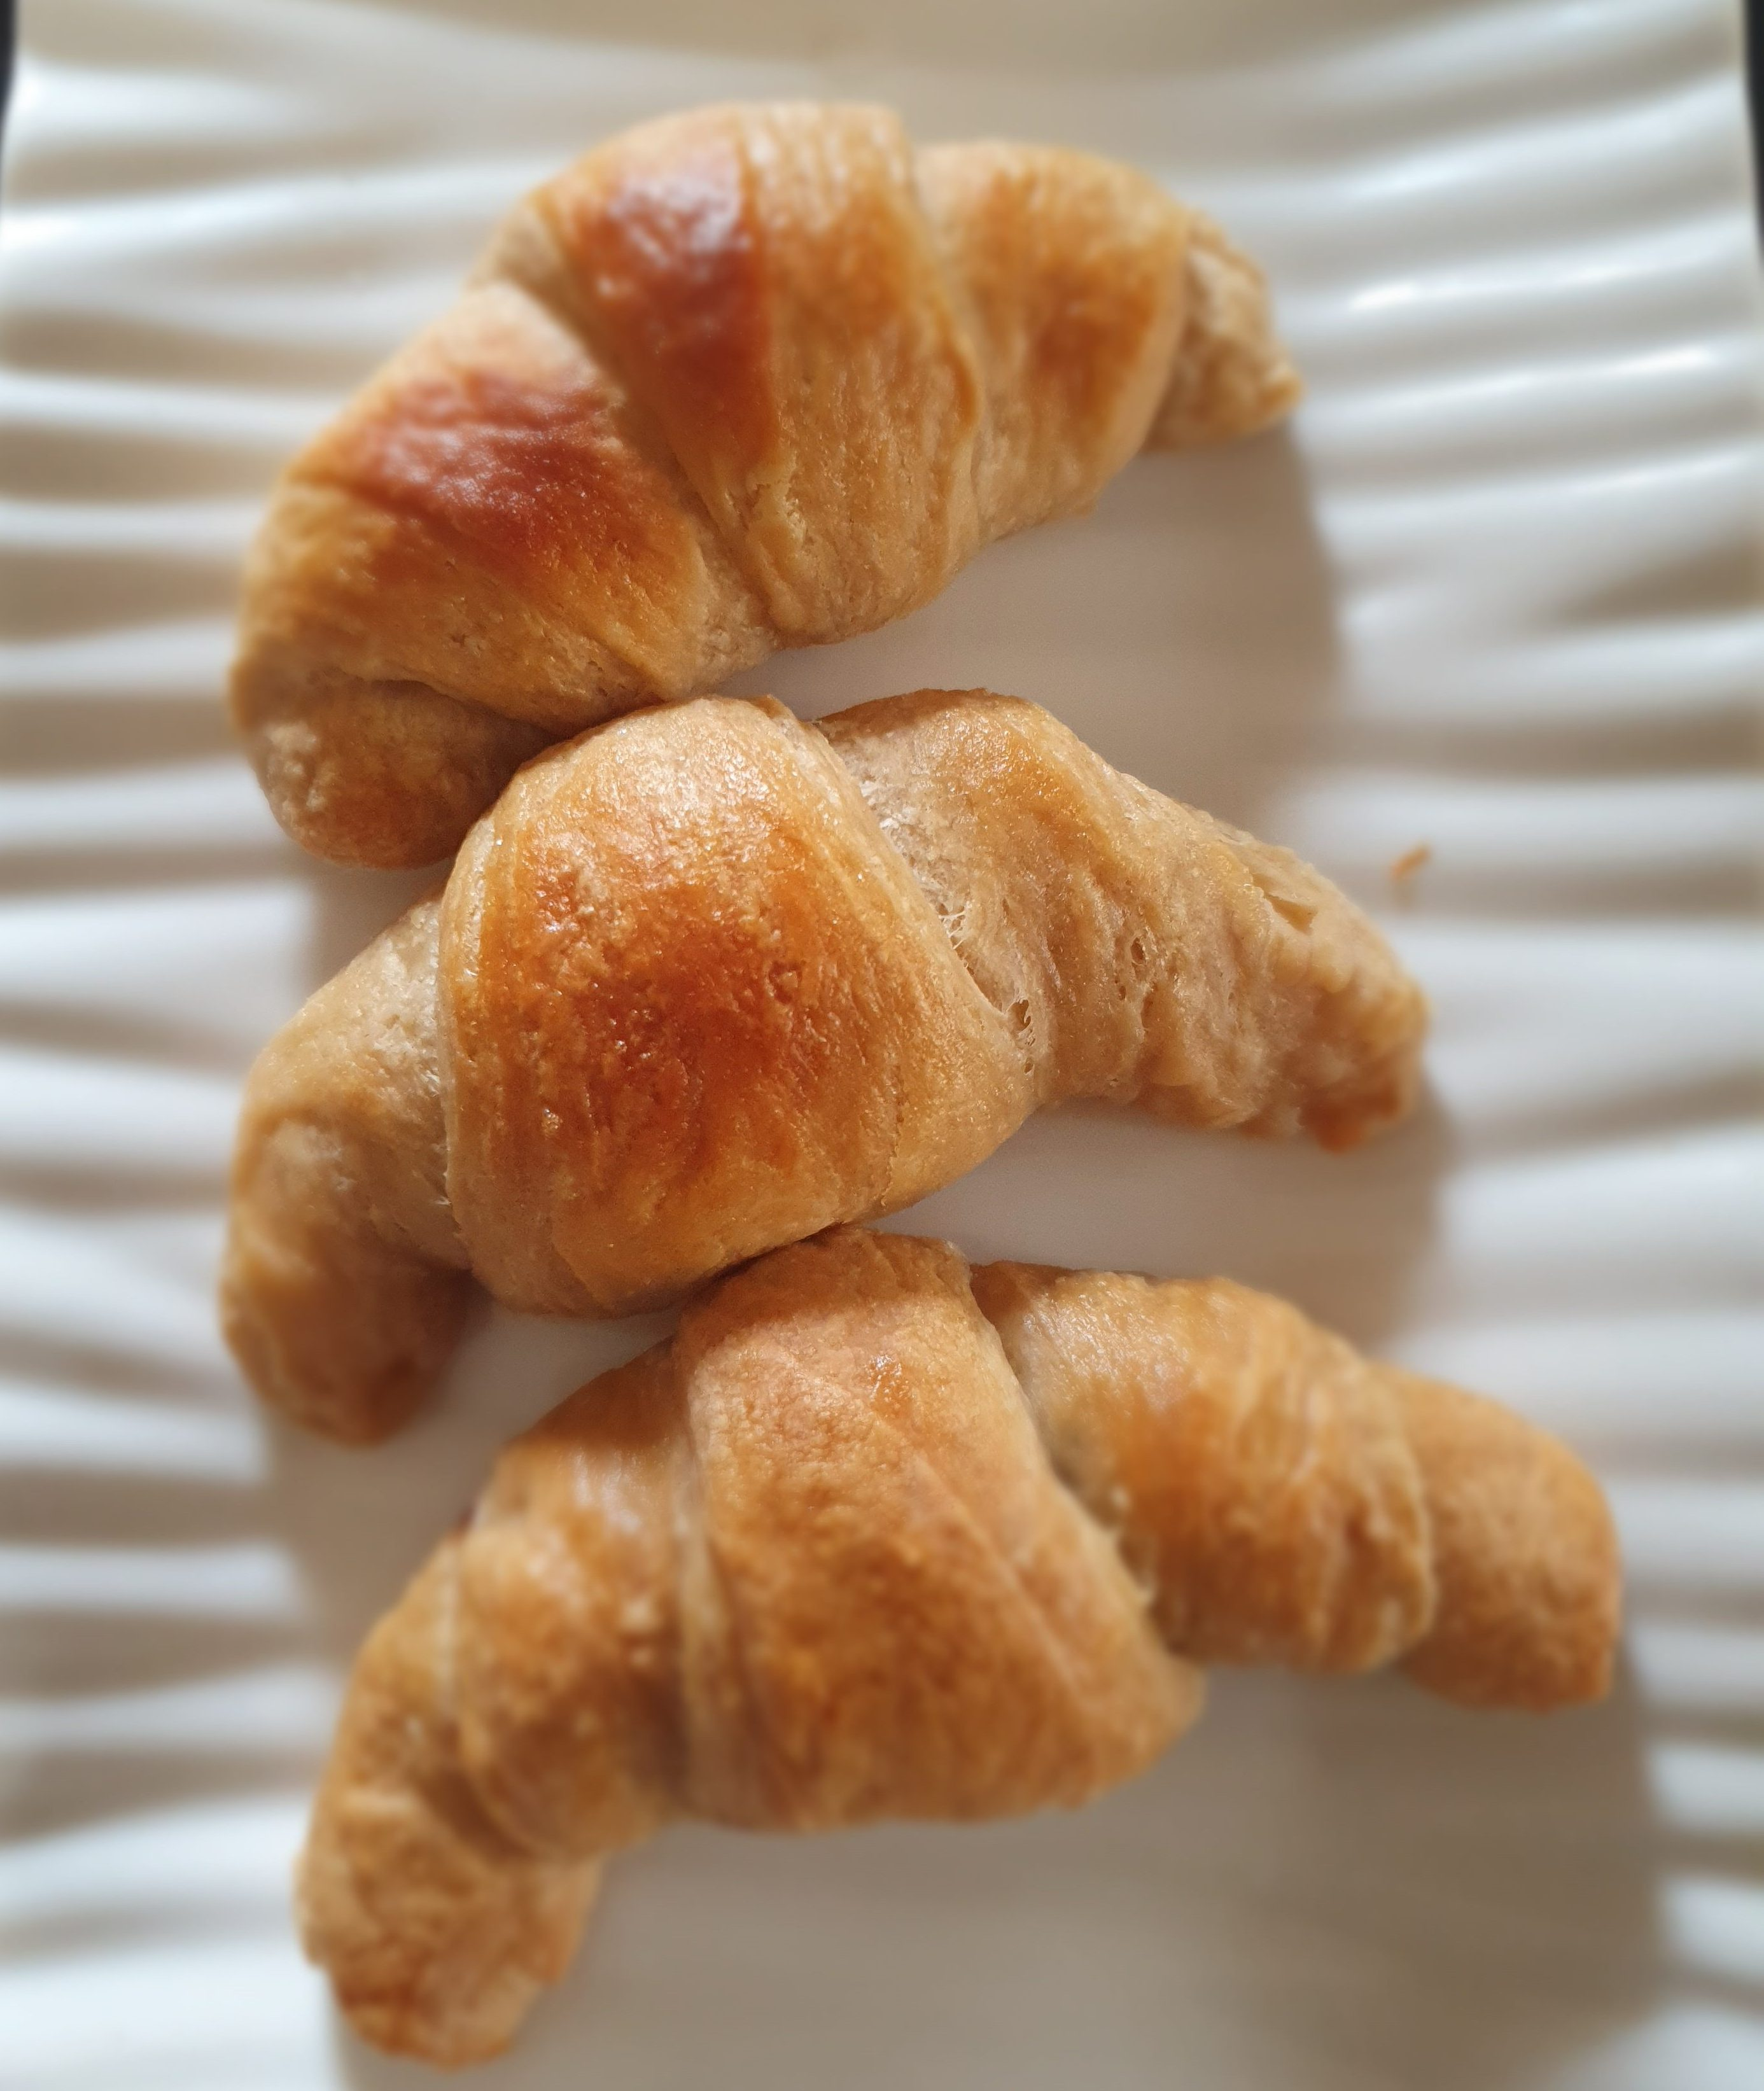 Baking Croissants : The process and the lessons learnt